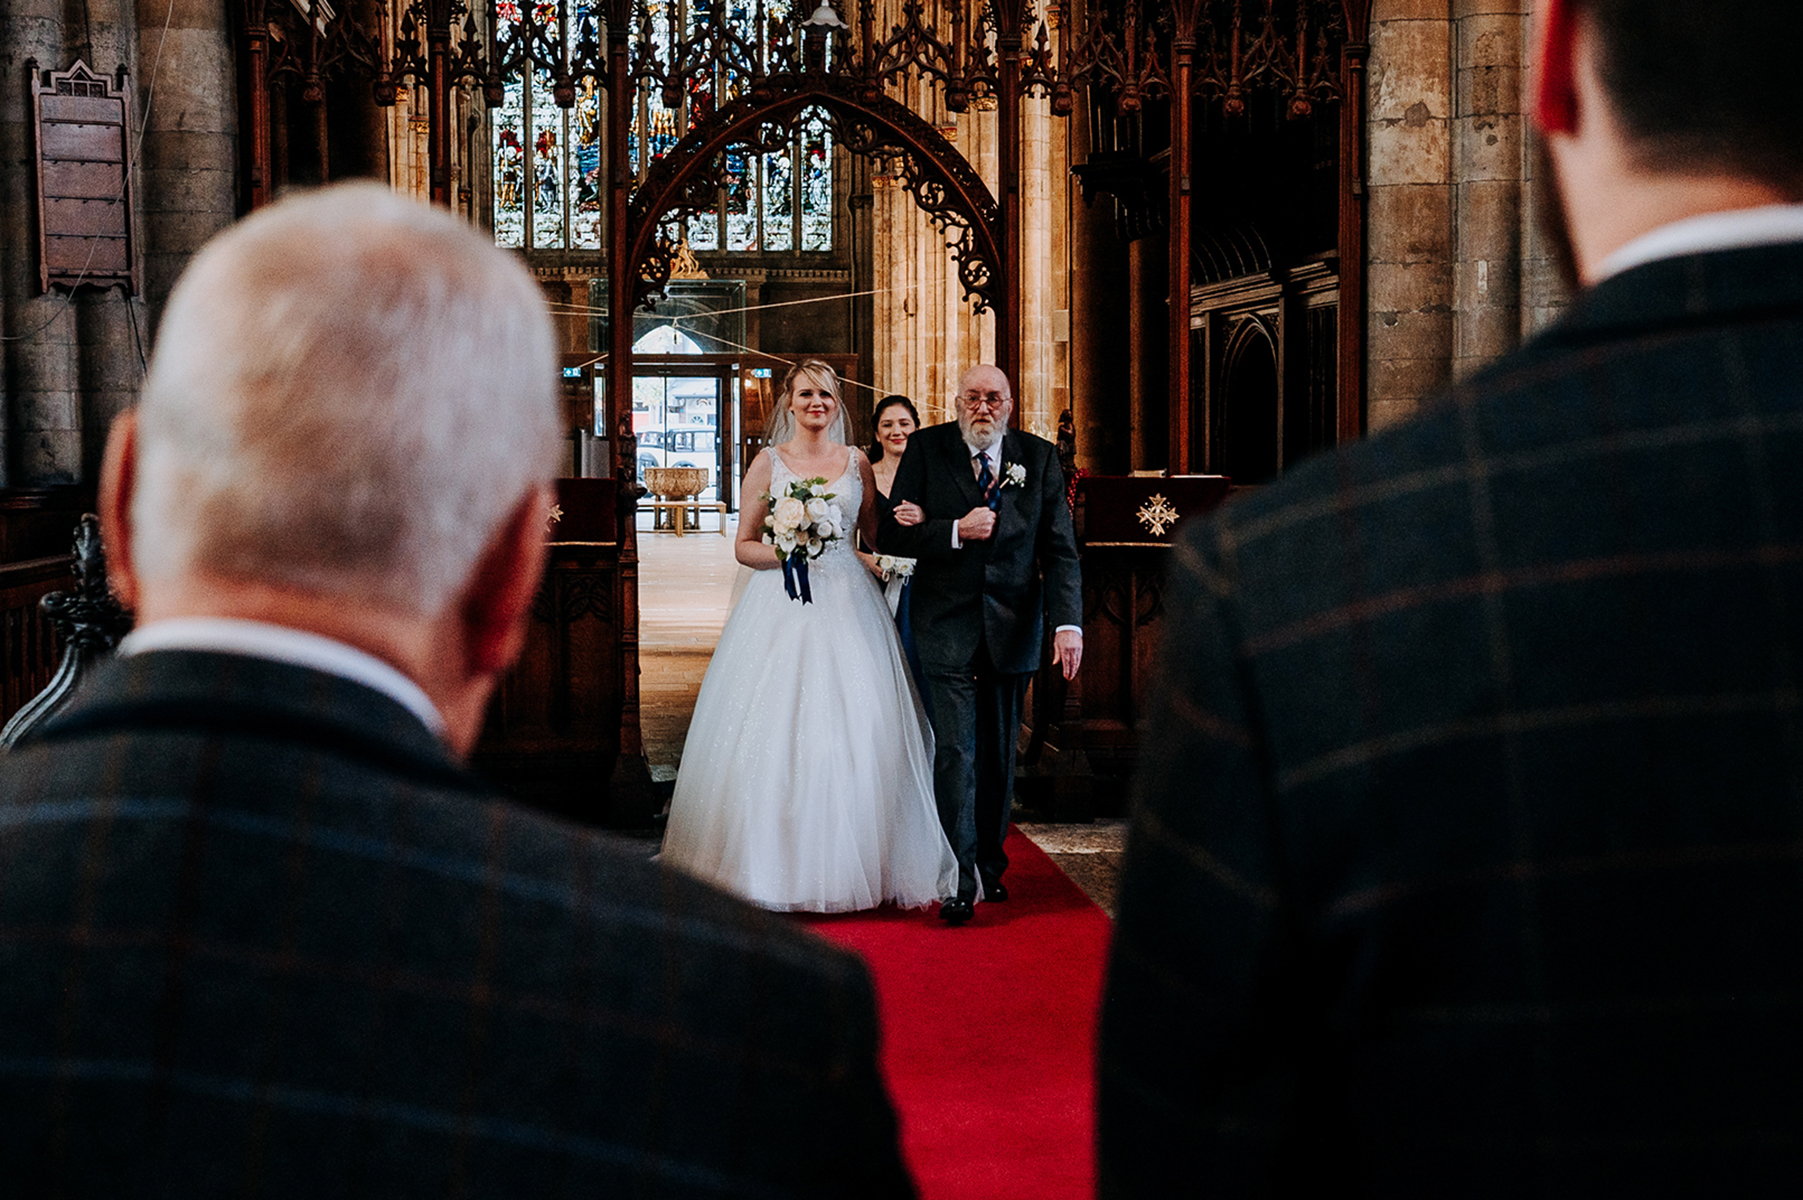 Hull Minster Bride/Dad Wedding Image | The bride and her father enter the church